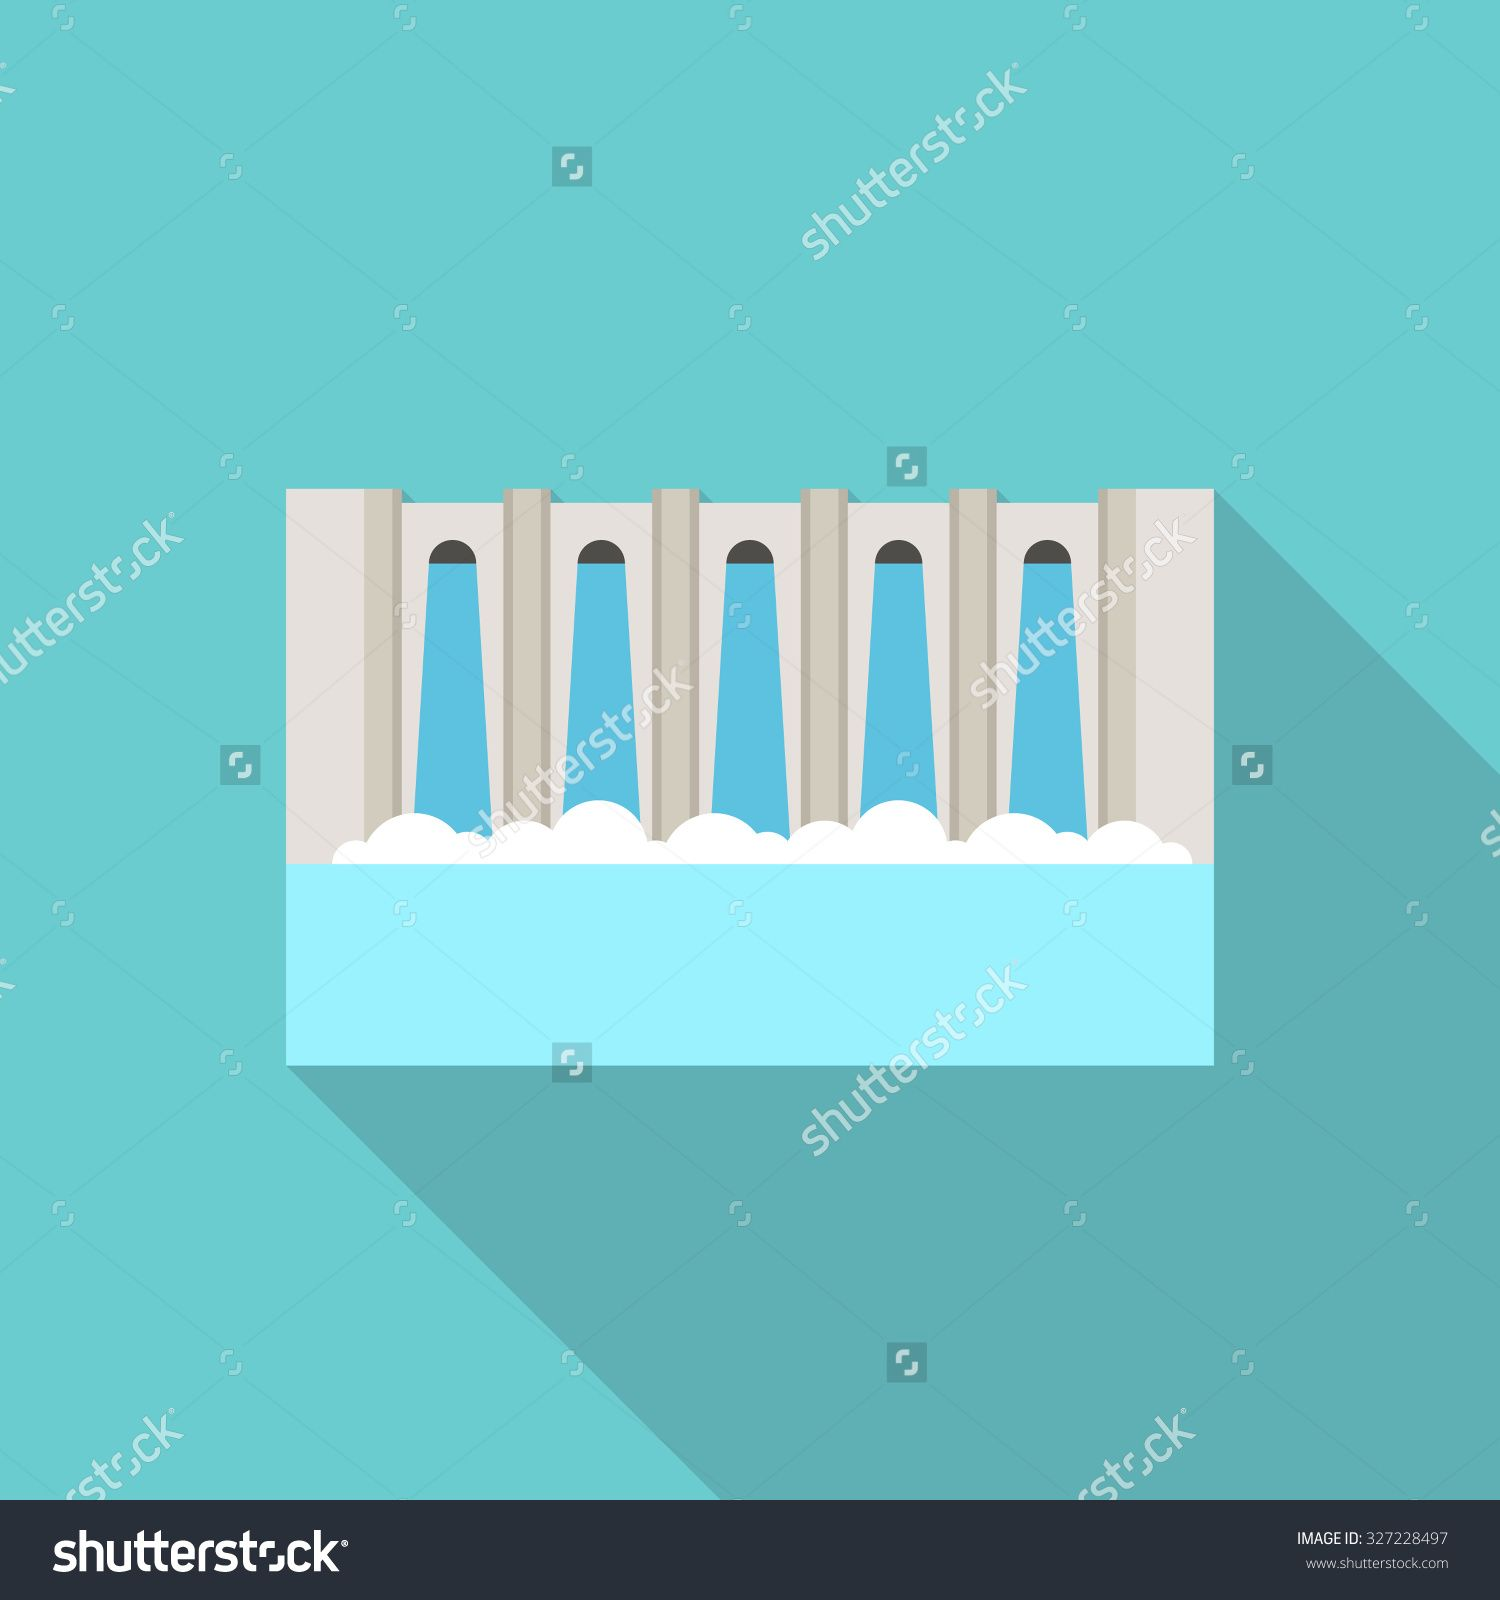 Flat Illustration Of A Hydroelectric Dam Generating Power And Electricity With…